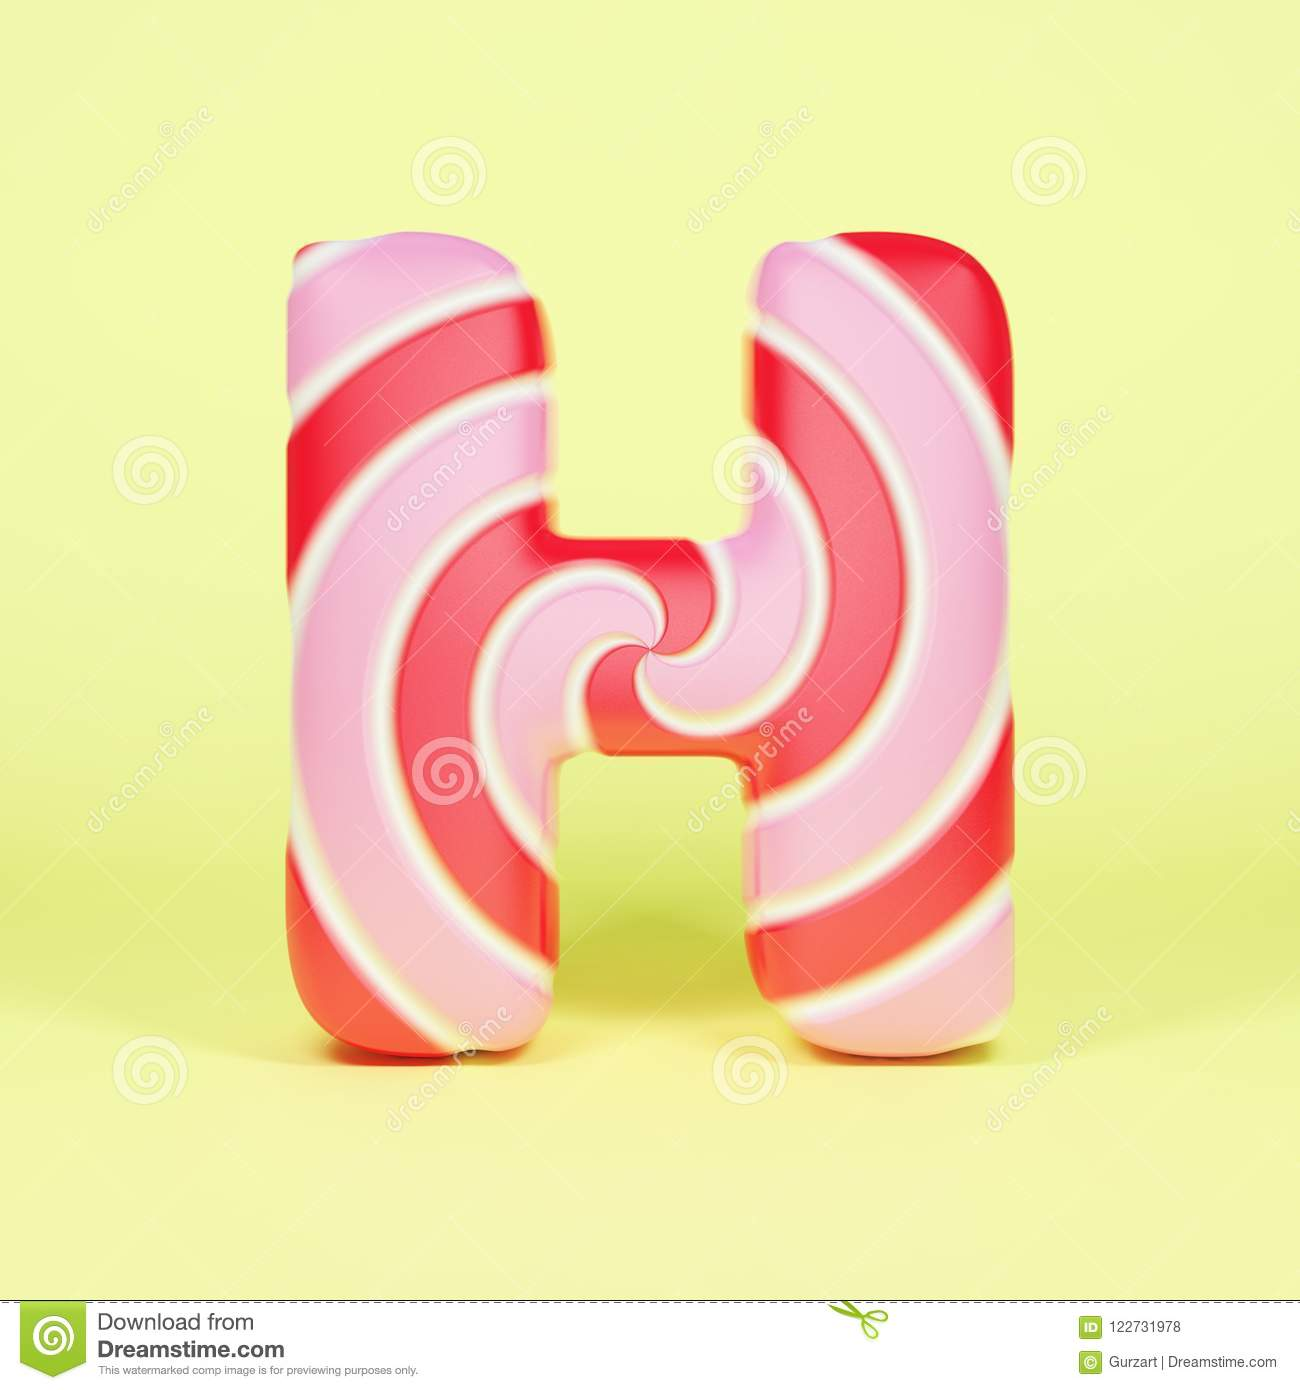 b5a14e81e2e0d Alphabet letter H uppercase. Christmas font made of pink and red striped  lollipop. 3D render on yellow background.